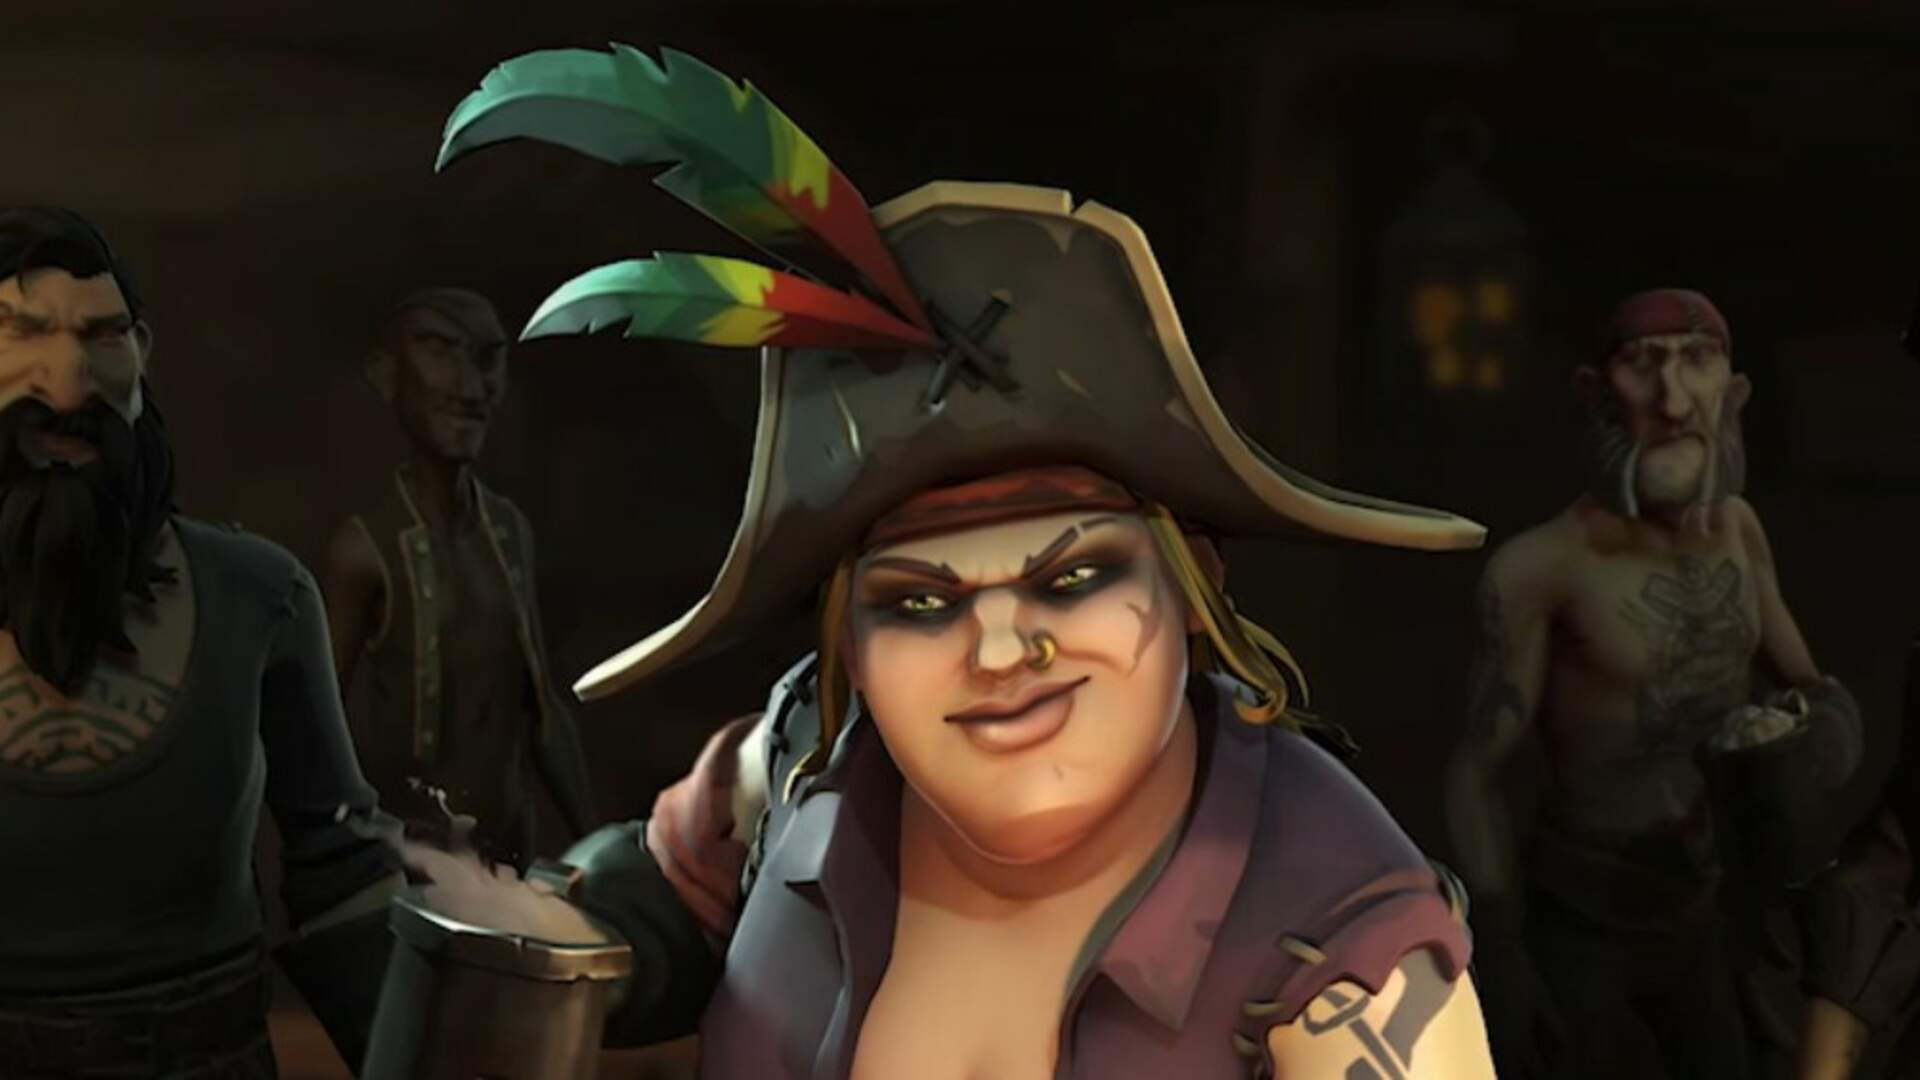 Sea of Thieves Post-Launch DLC Roadmap Will Focus on Pets, Hideouts, Legendary Voyages, and More